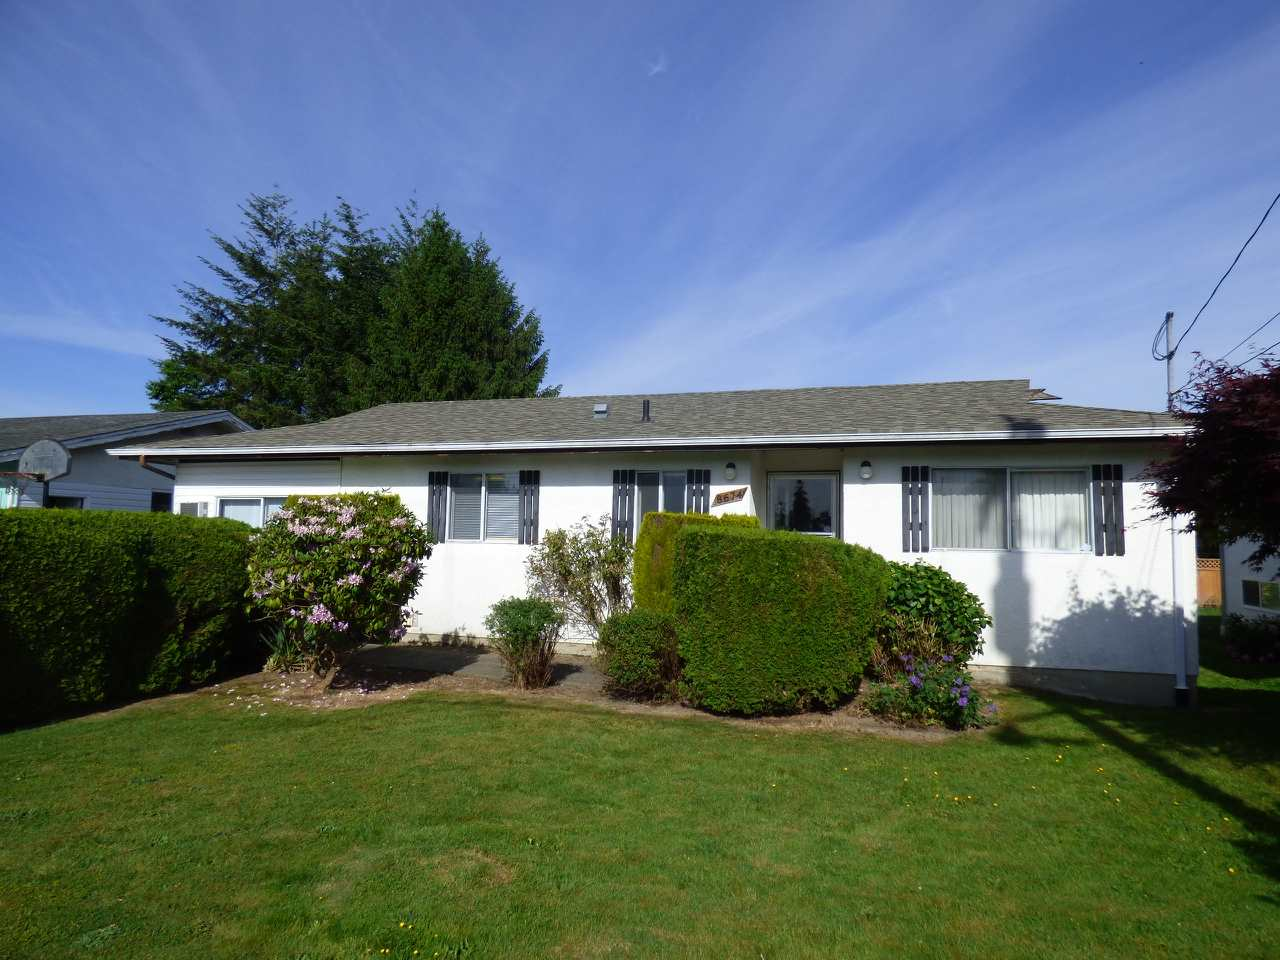 Main Photo: 8674 BROADWAY Street in Chilliwack: Chilliwack E Young-Yale House for sale : MLS® # R2069655